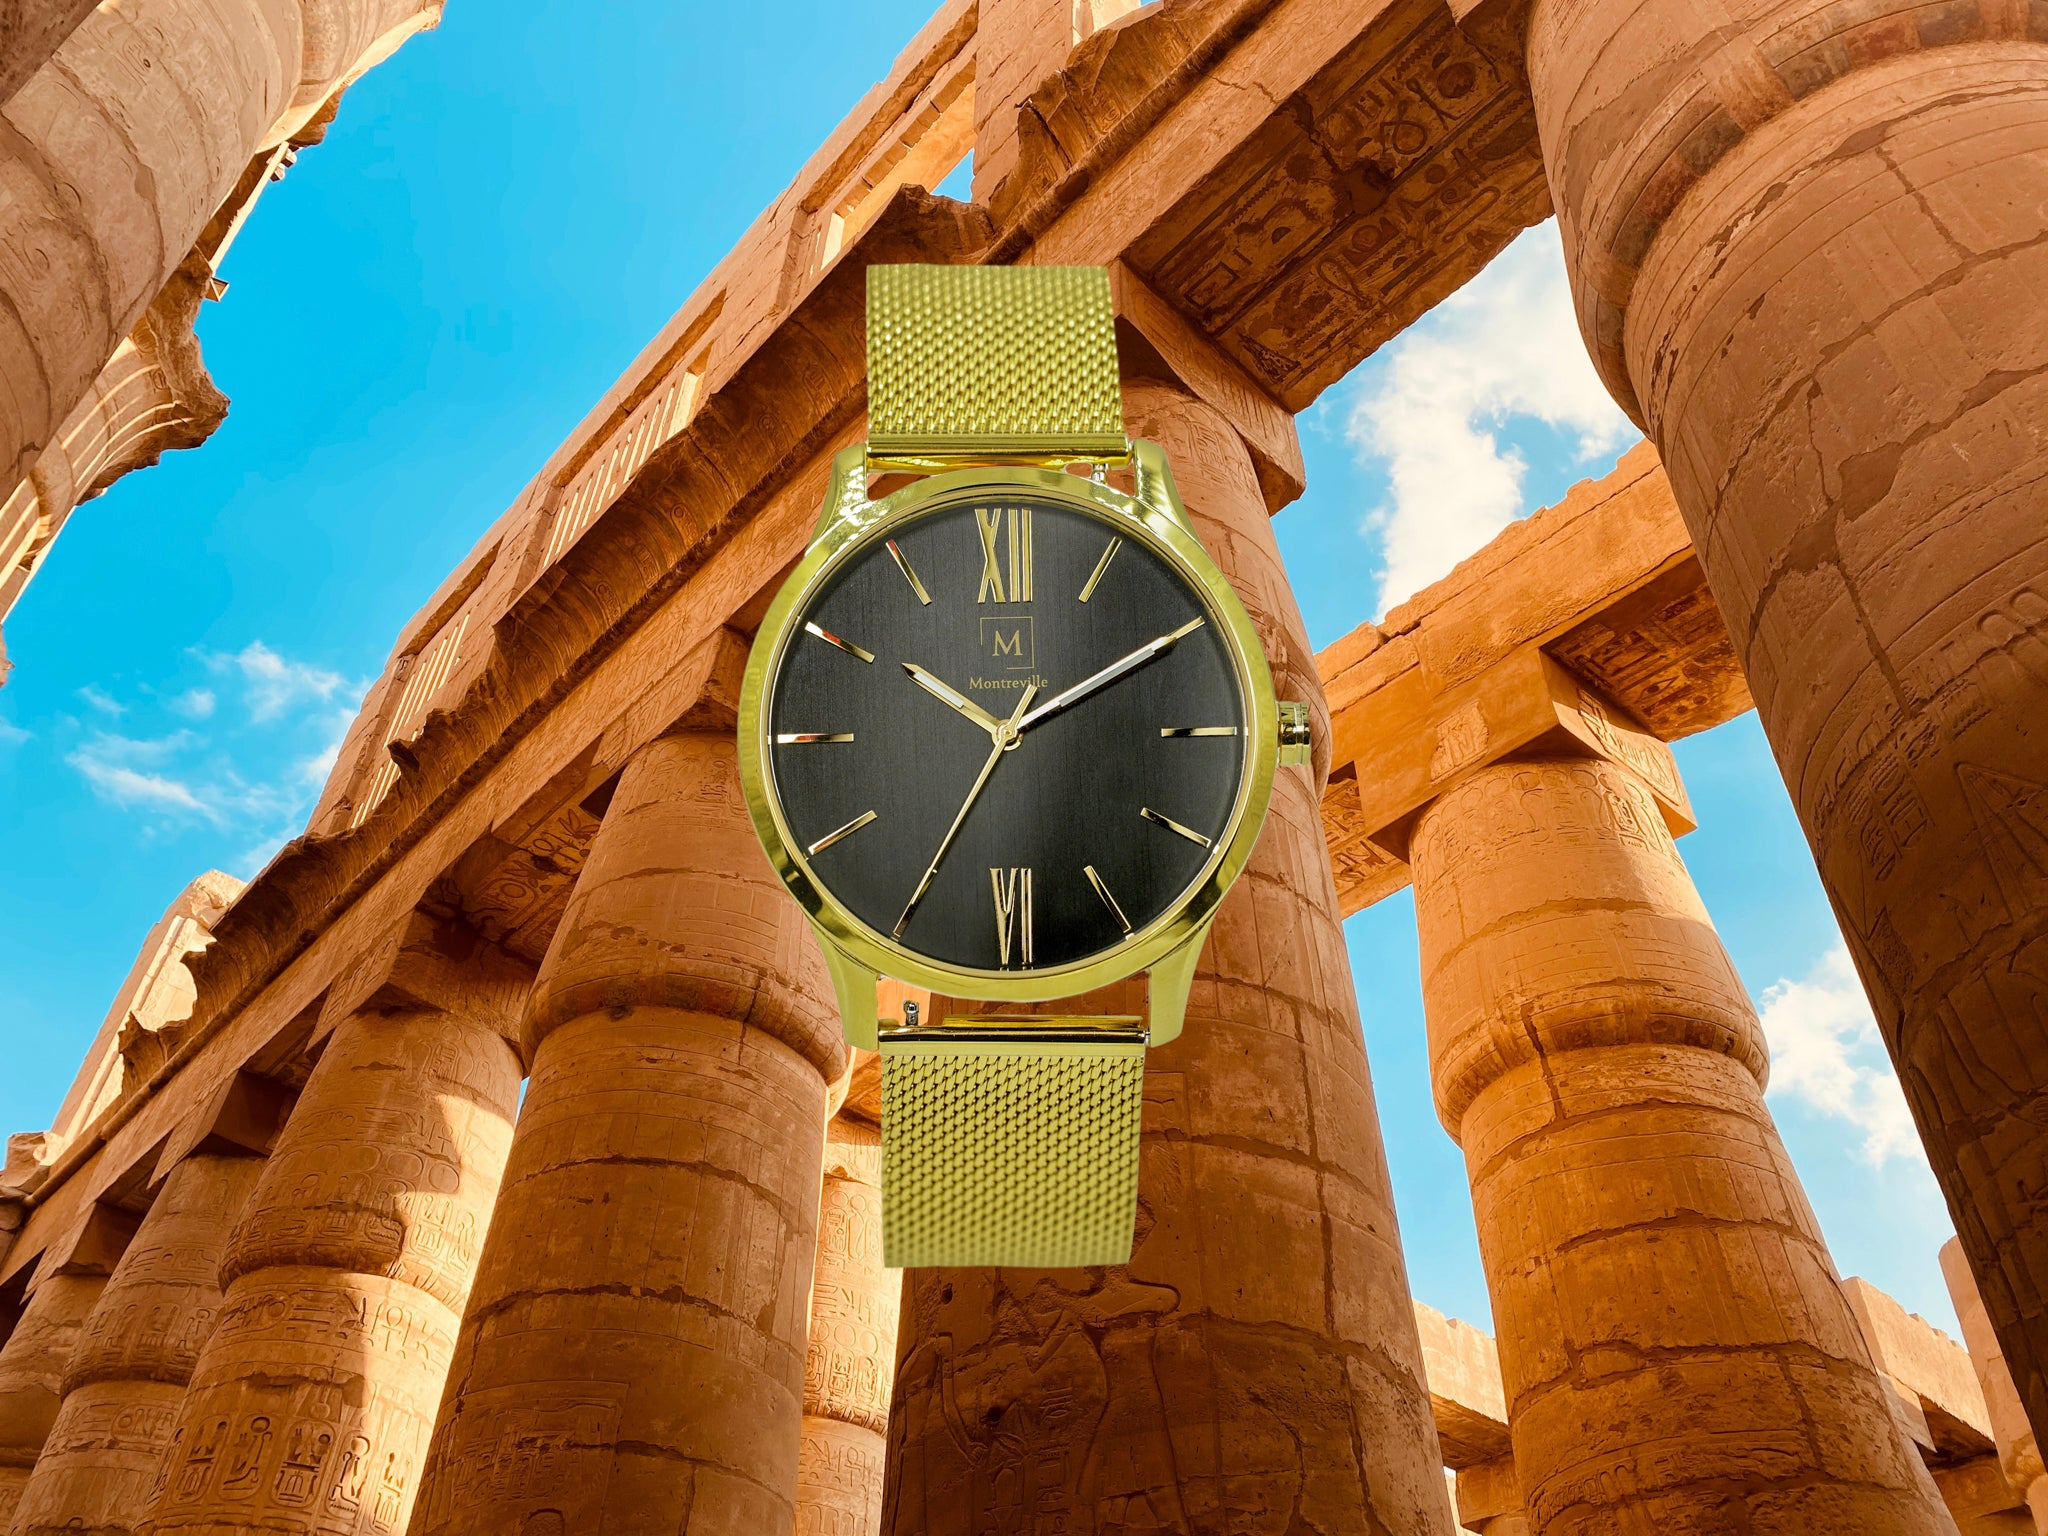 Gold watch called Luxor from the brand Montreville. This is an image of the watch with a picture of the city of Luxor in the background. The timepiece has an elegant design with roman numerals in gold and a mesh strap in gold.